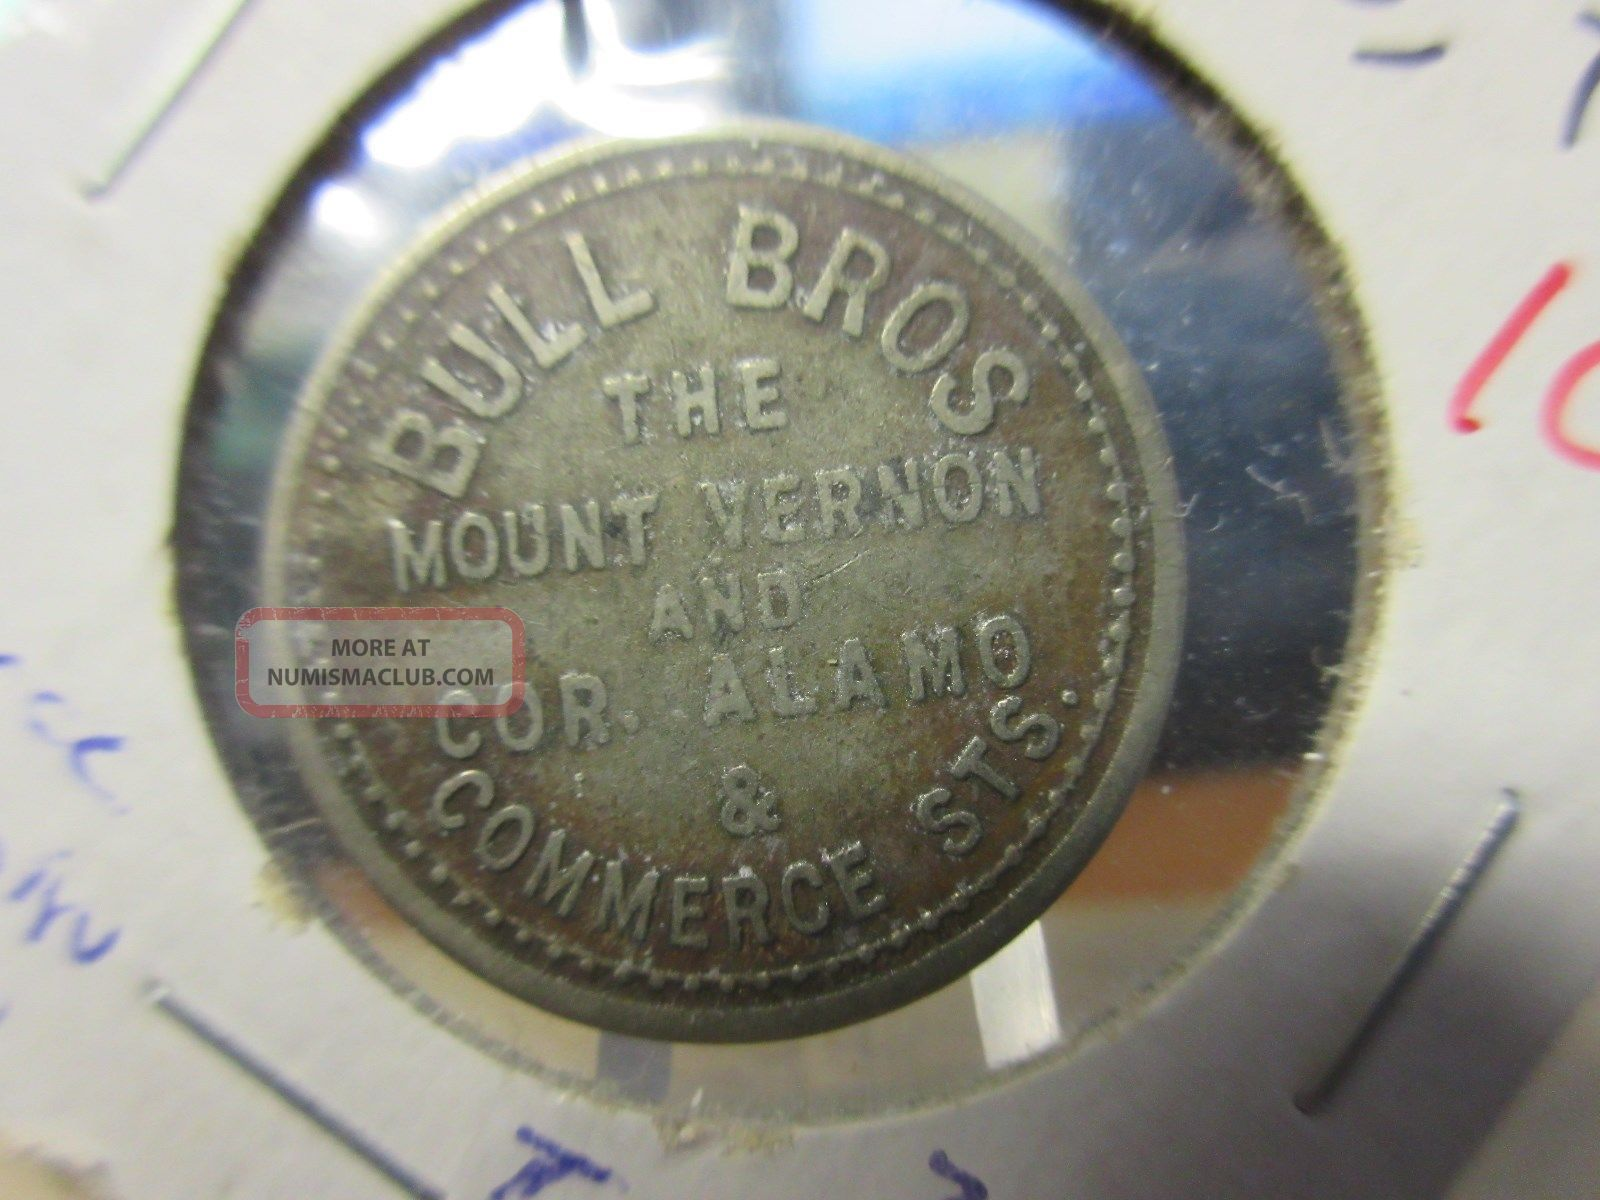 R - San - 21 San Antonio Texas / Bull Brothers Saloon Gf 2 1/2 Token 24mm Exonumia photo